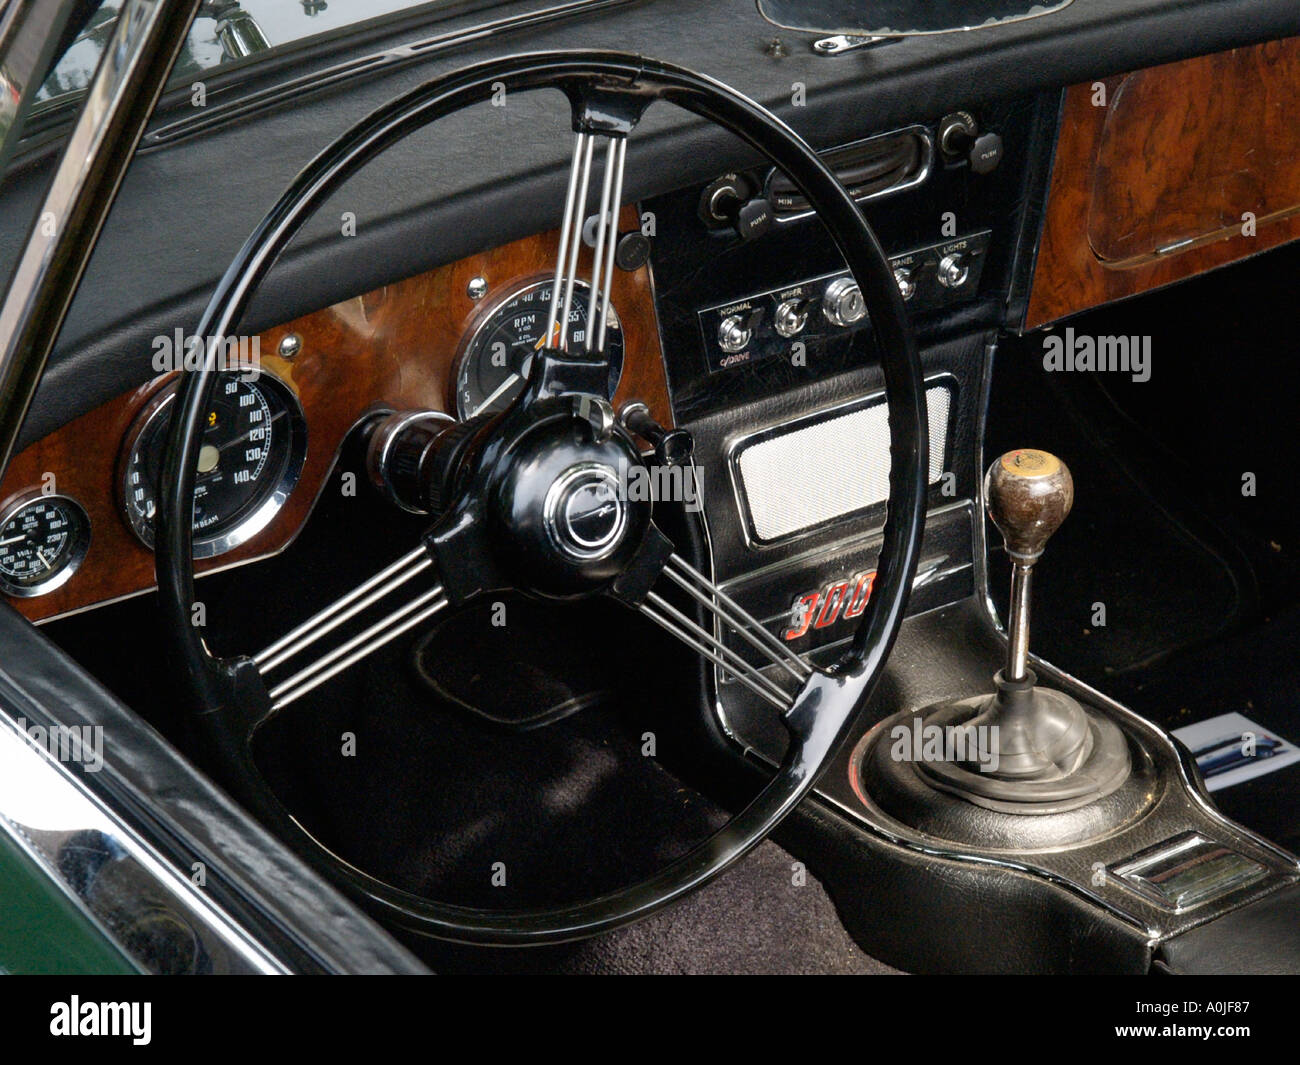 interior of an austin healey 3000 mk3 classic sports car with sprung stock photo royalty free. Black Bedroom Furniture Sets. Home Design Ideas